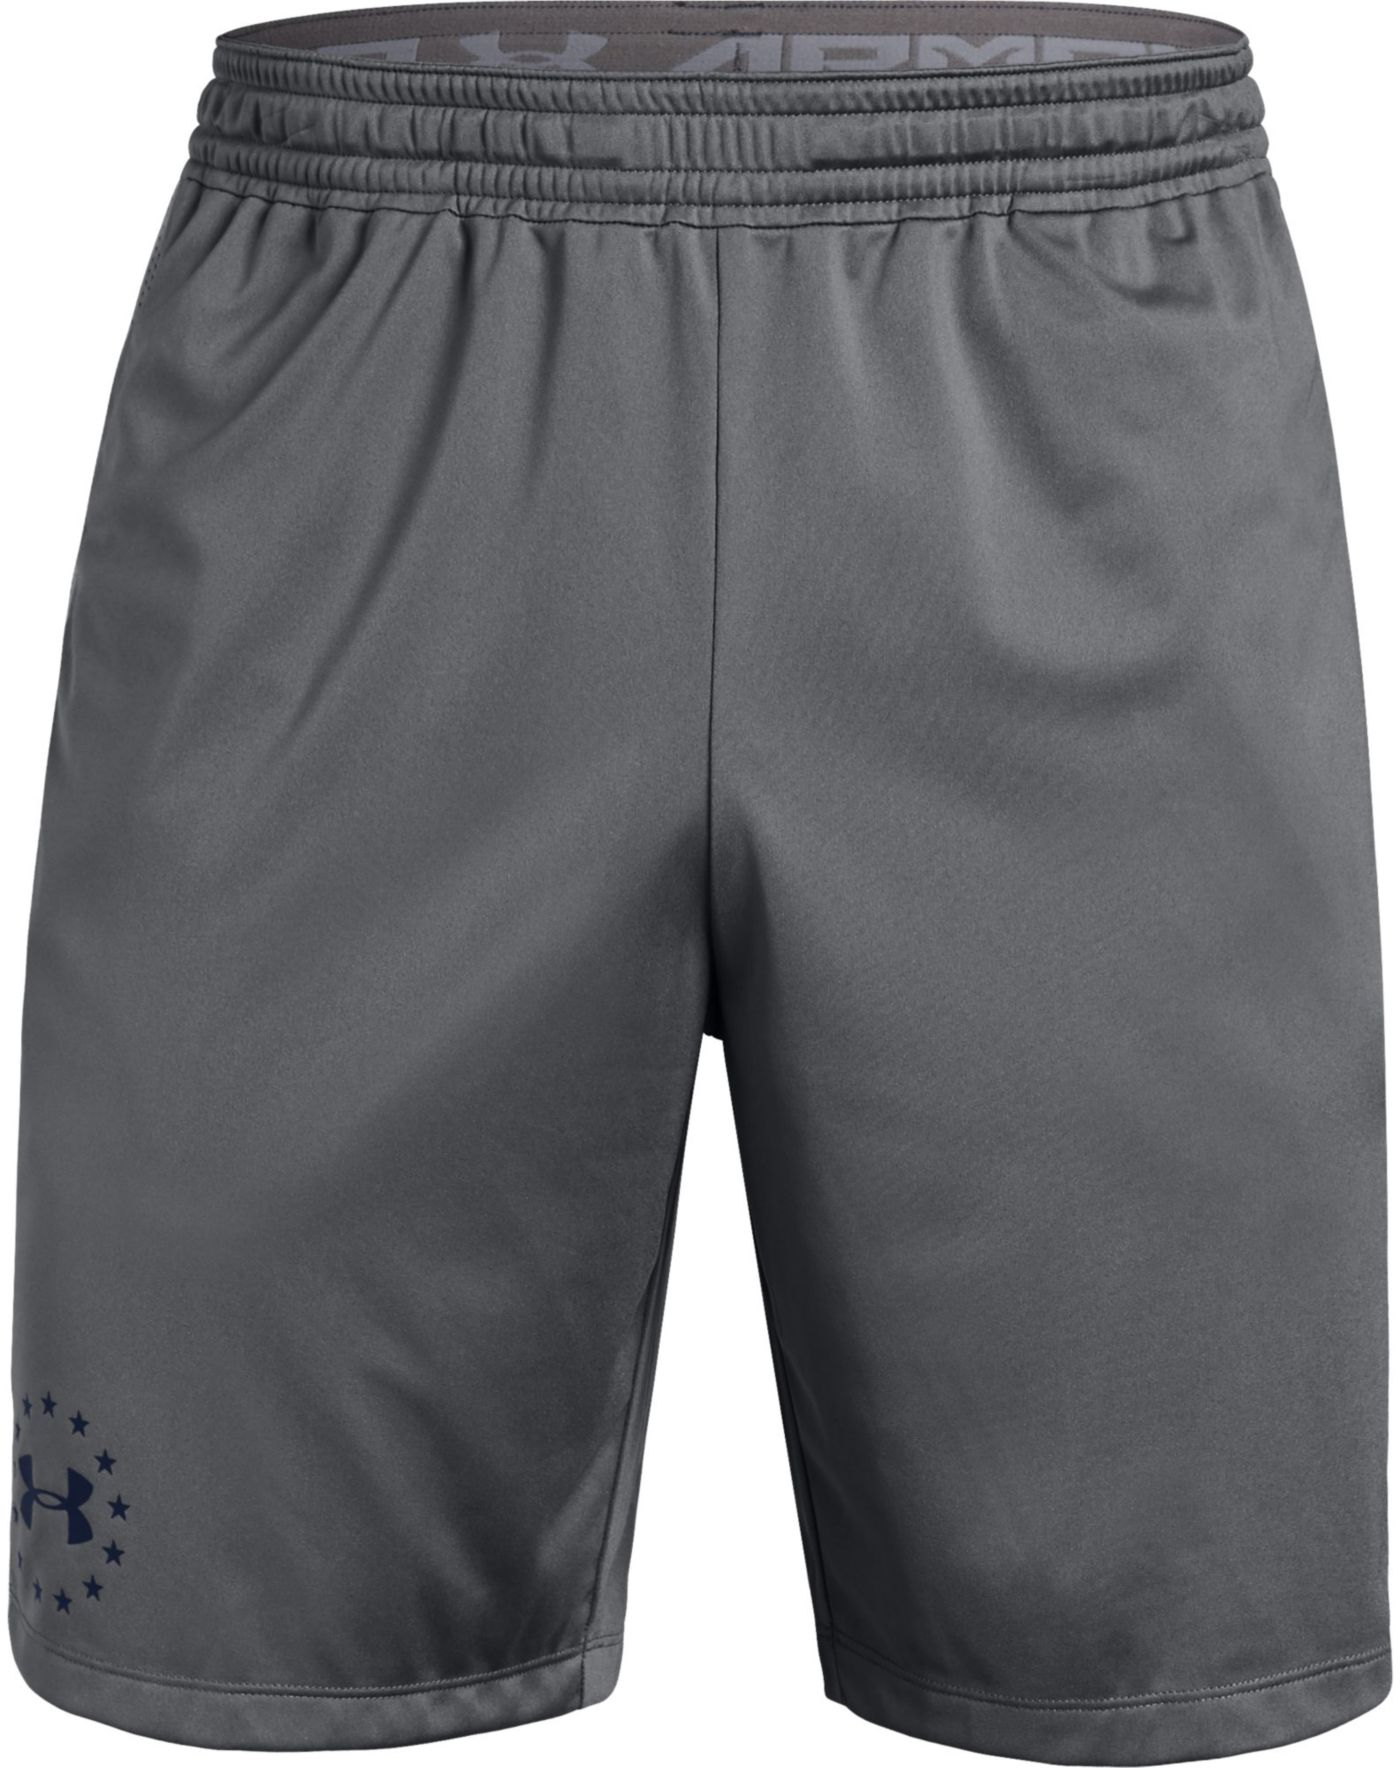 Under Armour Men's Freedom Raid 2.0 Shorts